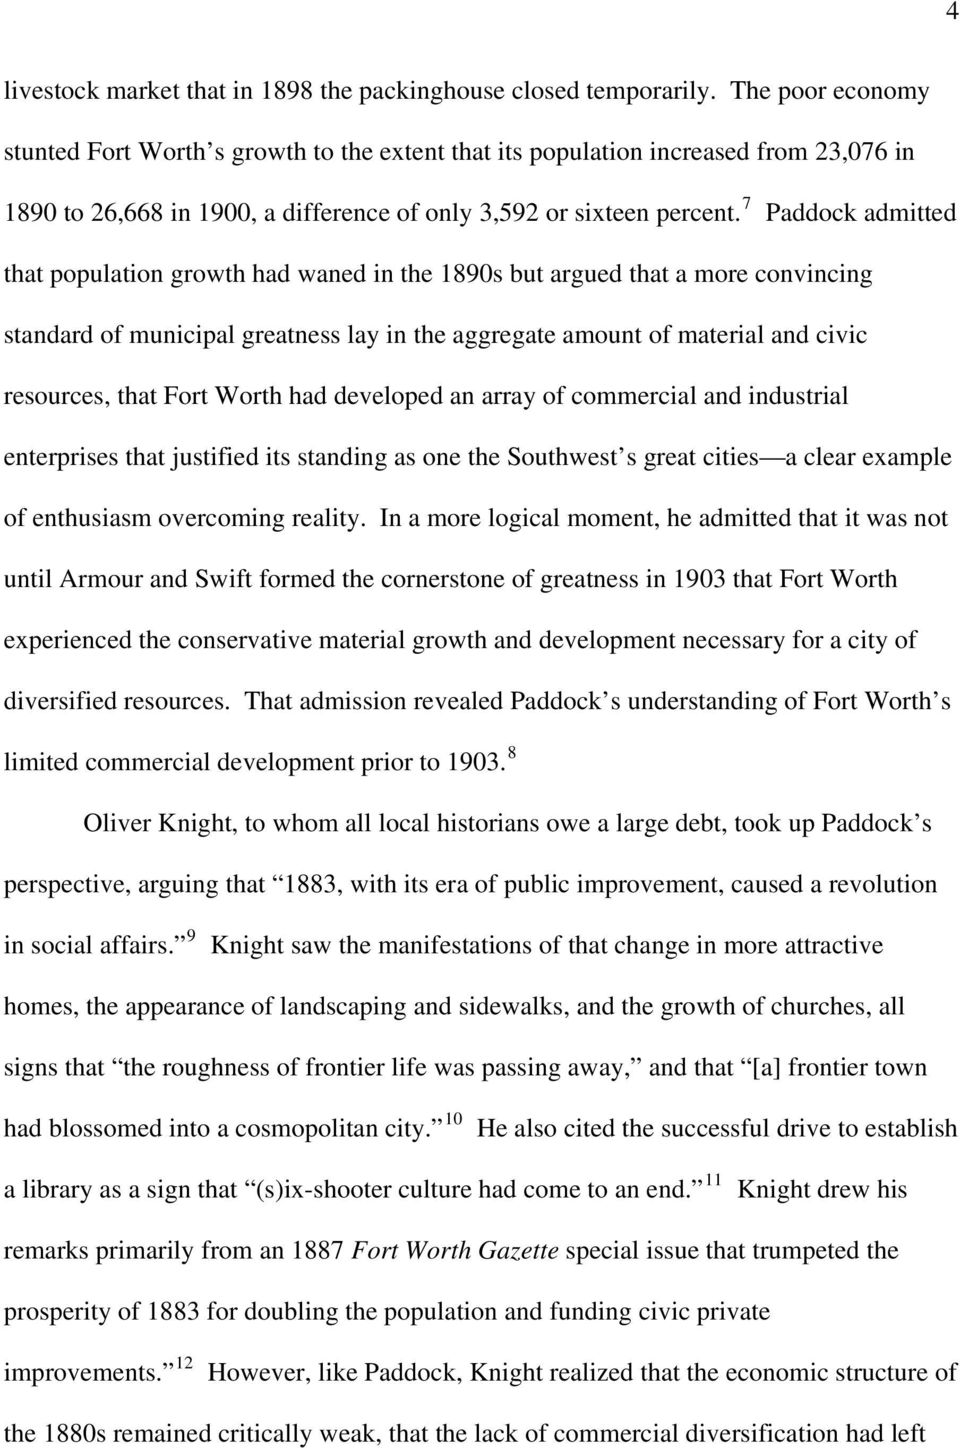 7 Paddock admitted that population growth had waned in the 1890s but argued that a more convincing standard of municipal greatness lay in the aggregate amount of material and civic resources, that